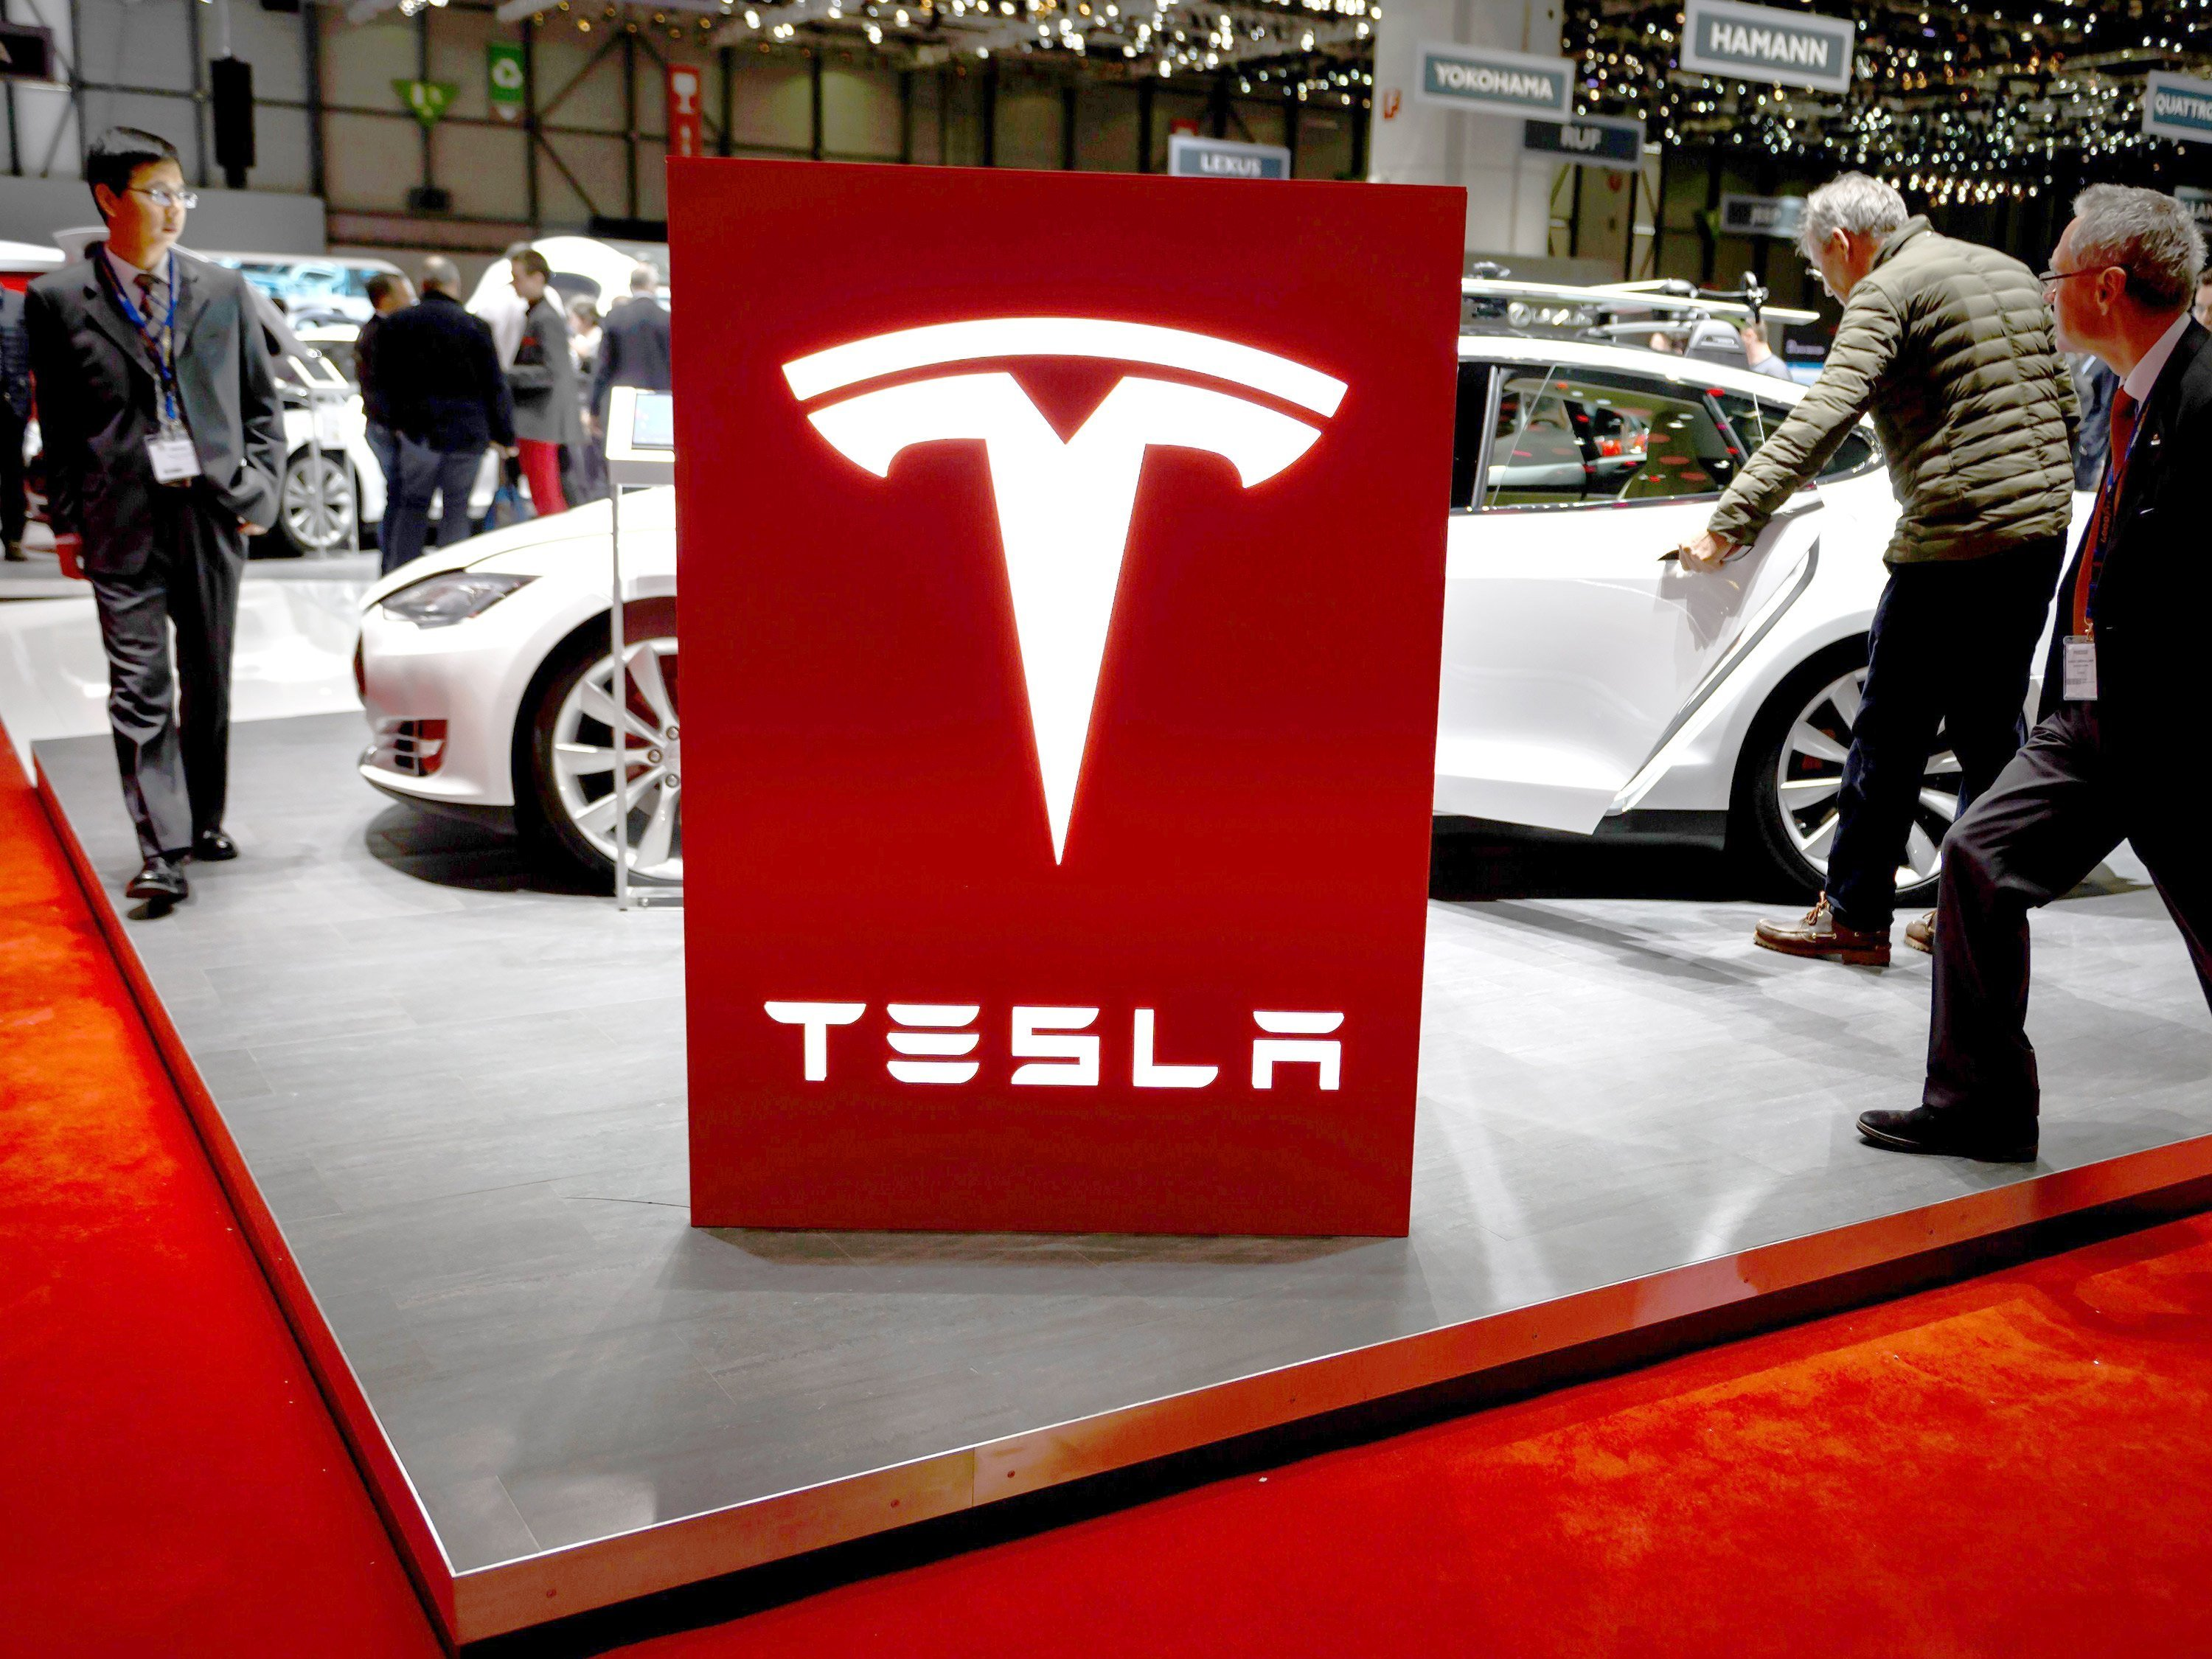 Work safety regulators open probe into Tesla's factory conditions